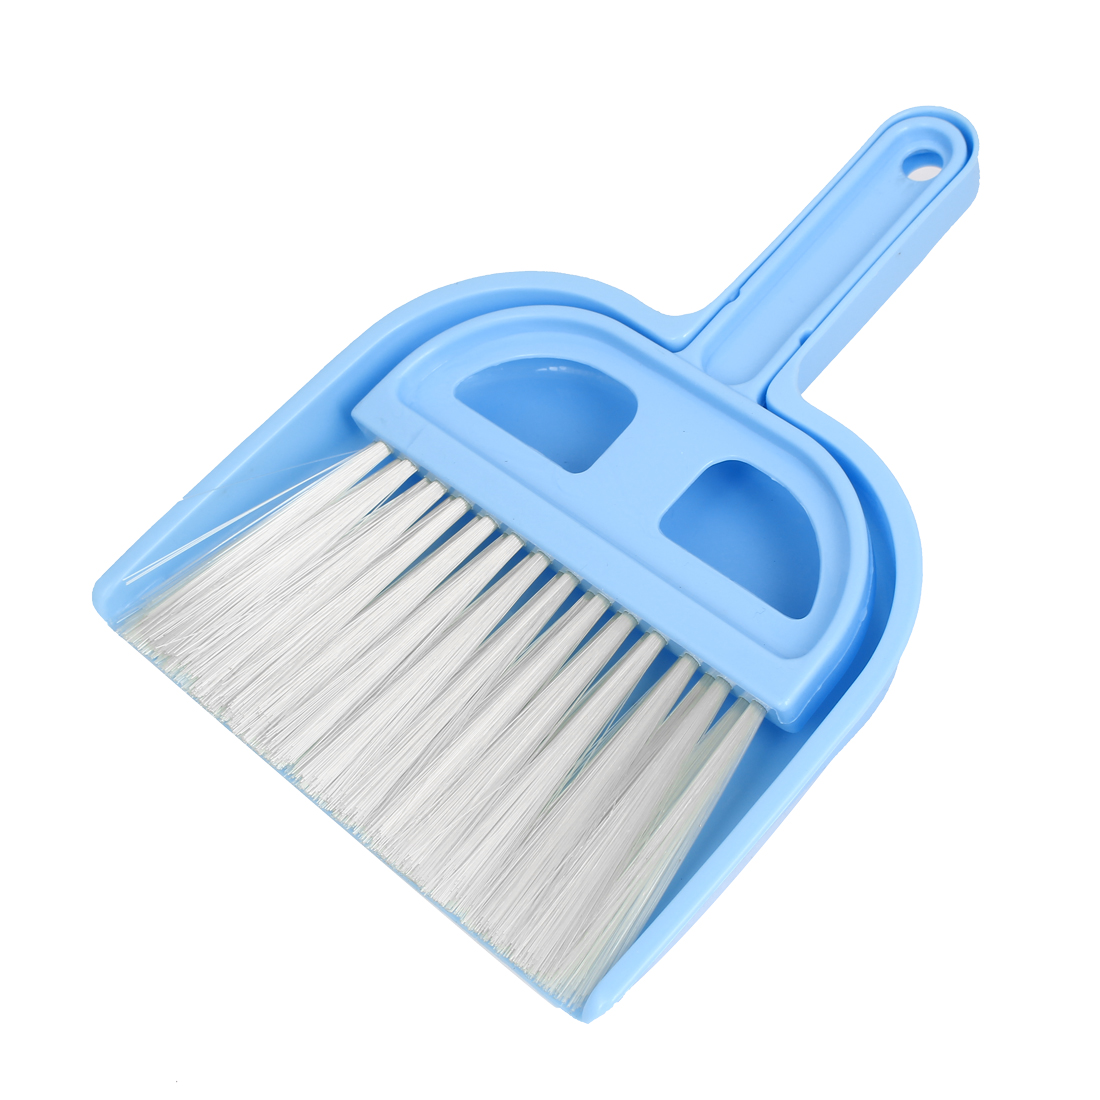 Car Dashboard Desktop Computer Keyboard Mini Cleaning Brush Dustpan Set Blue